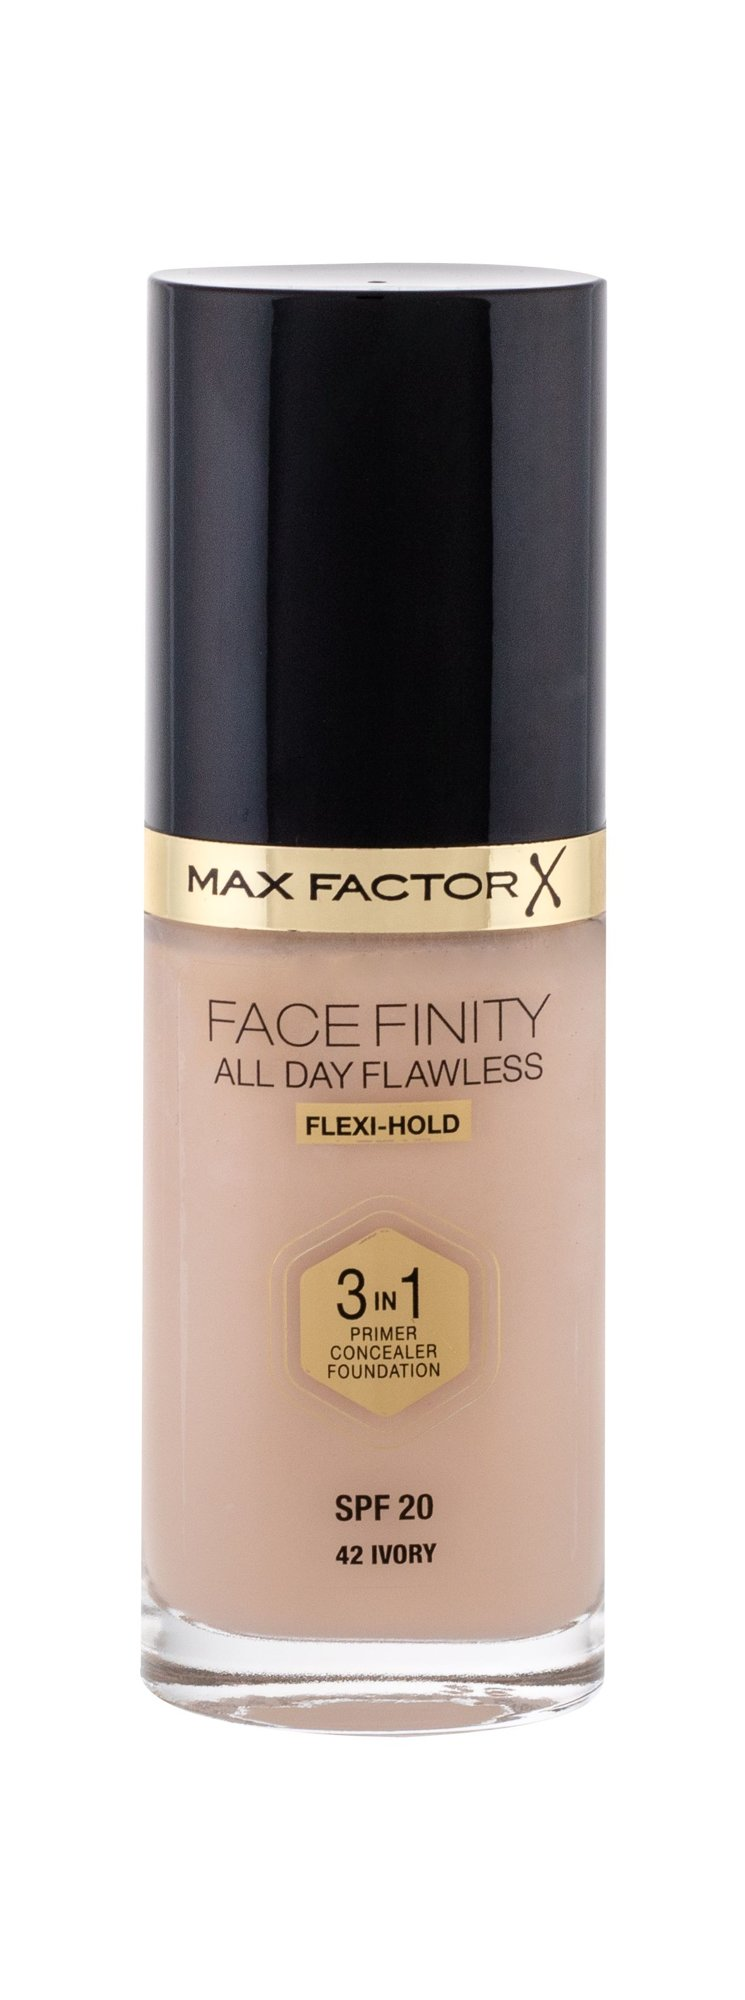 Max Factor Facefinity Makeup 30ml 42 Ivory